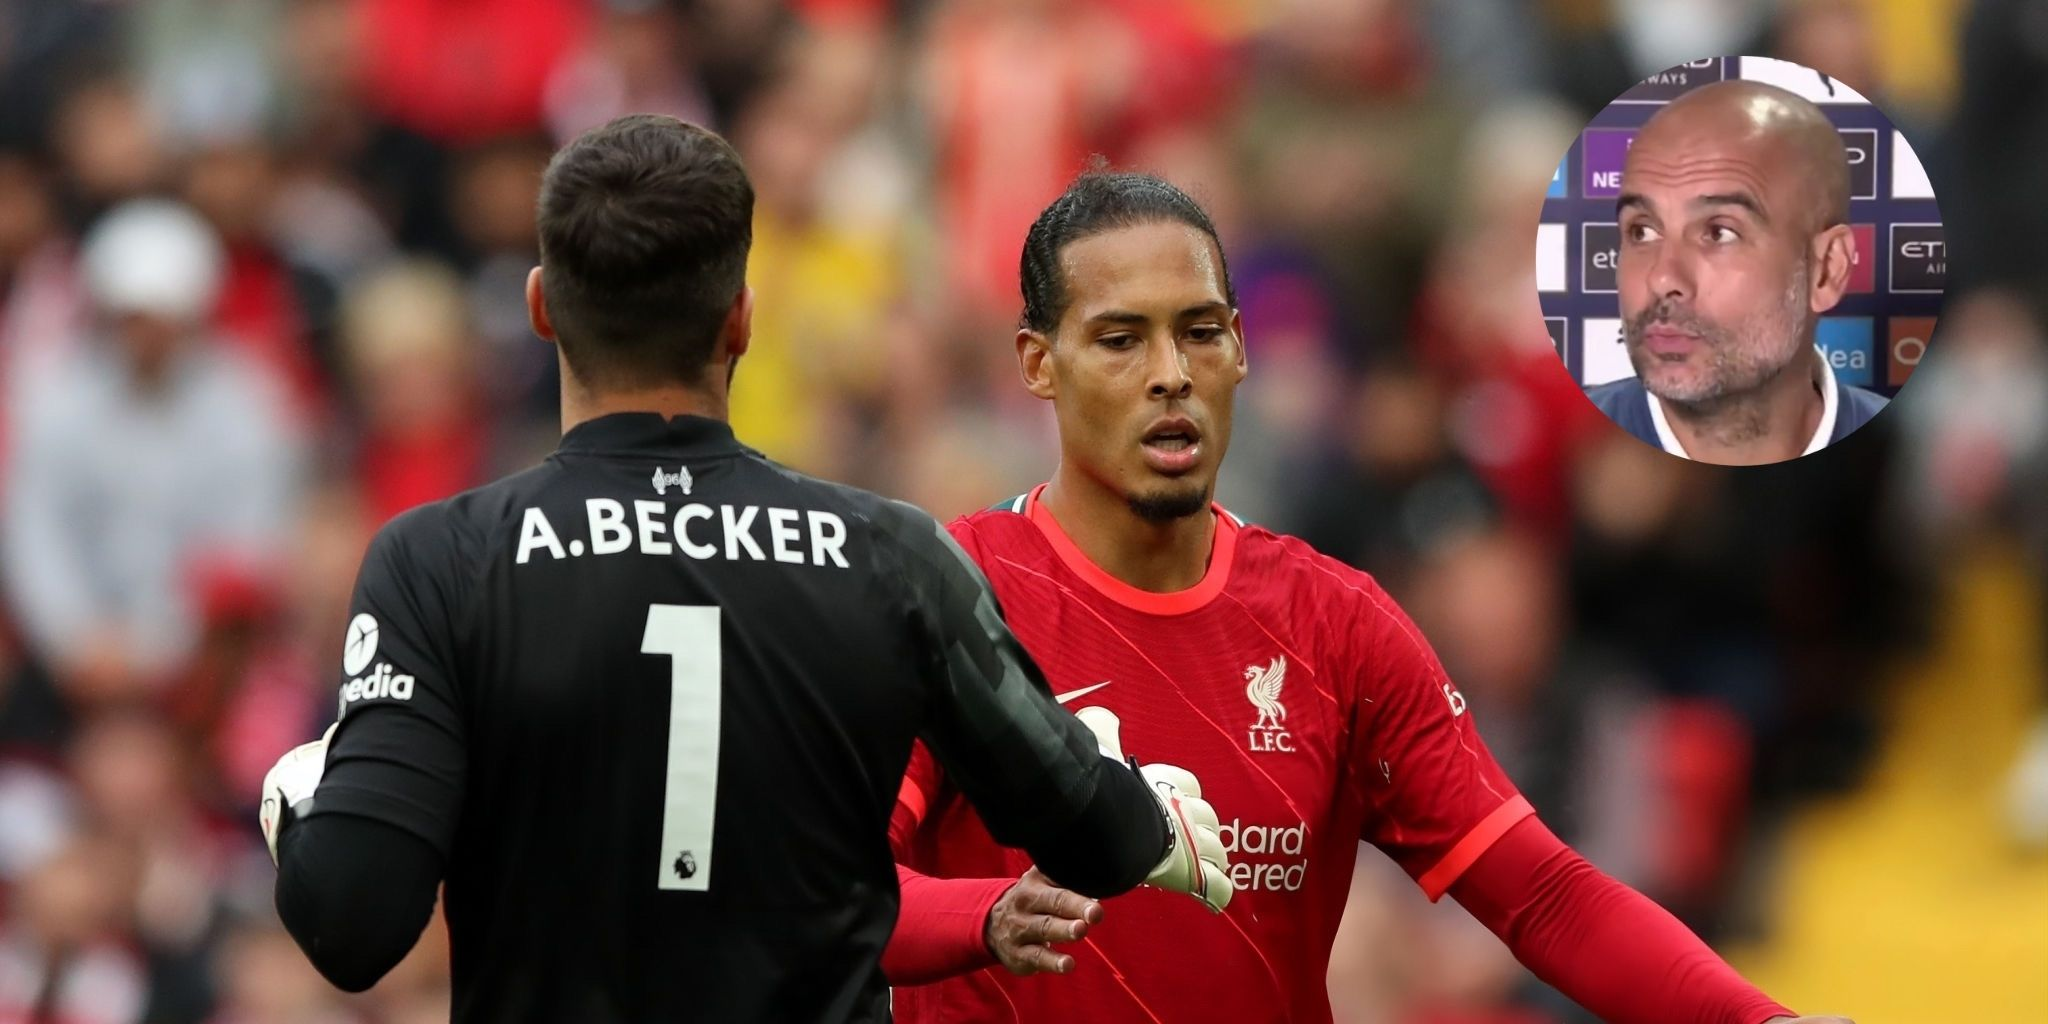 Guardiola brings up Liverpool, Van Dijk & Alisson when challenged on City's spending this summer